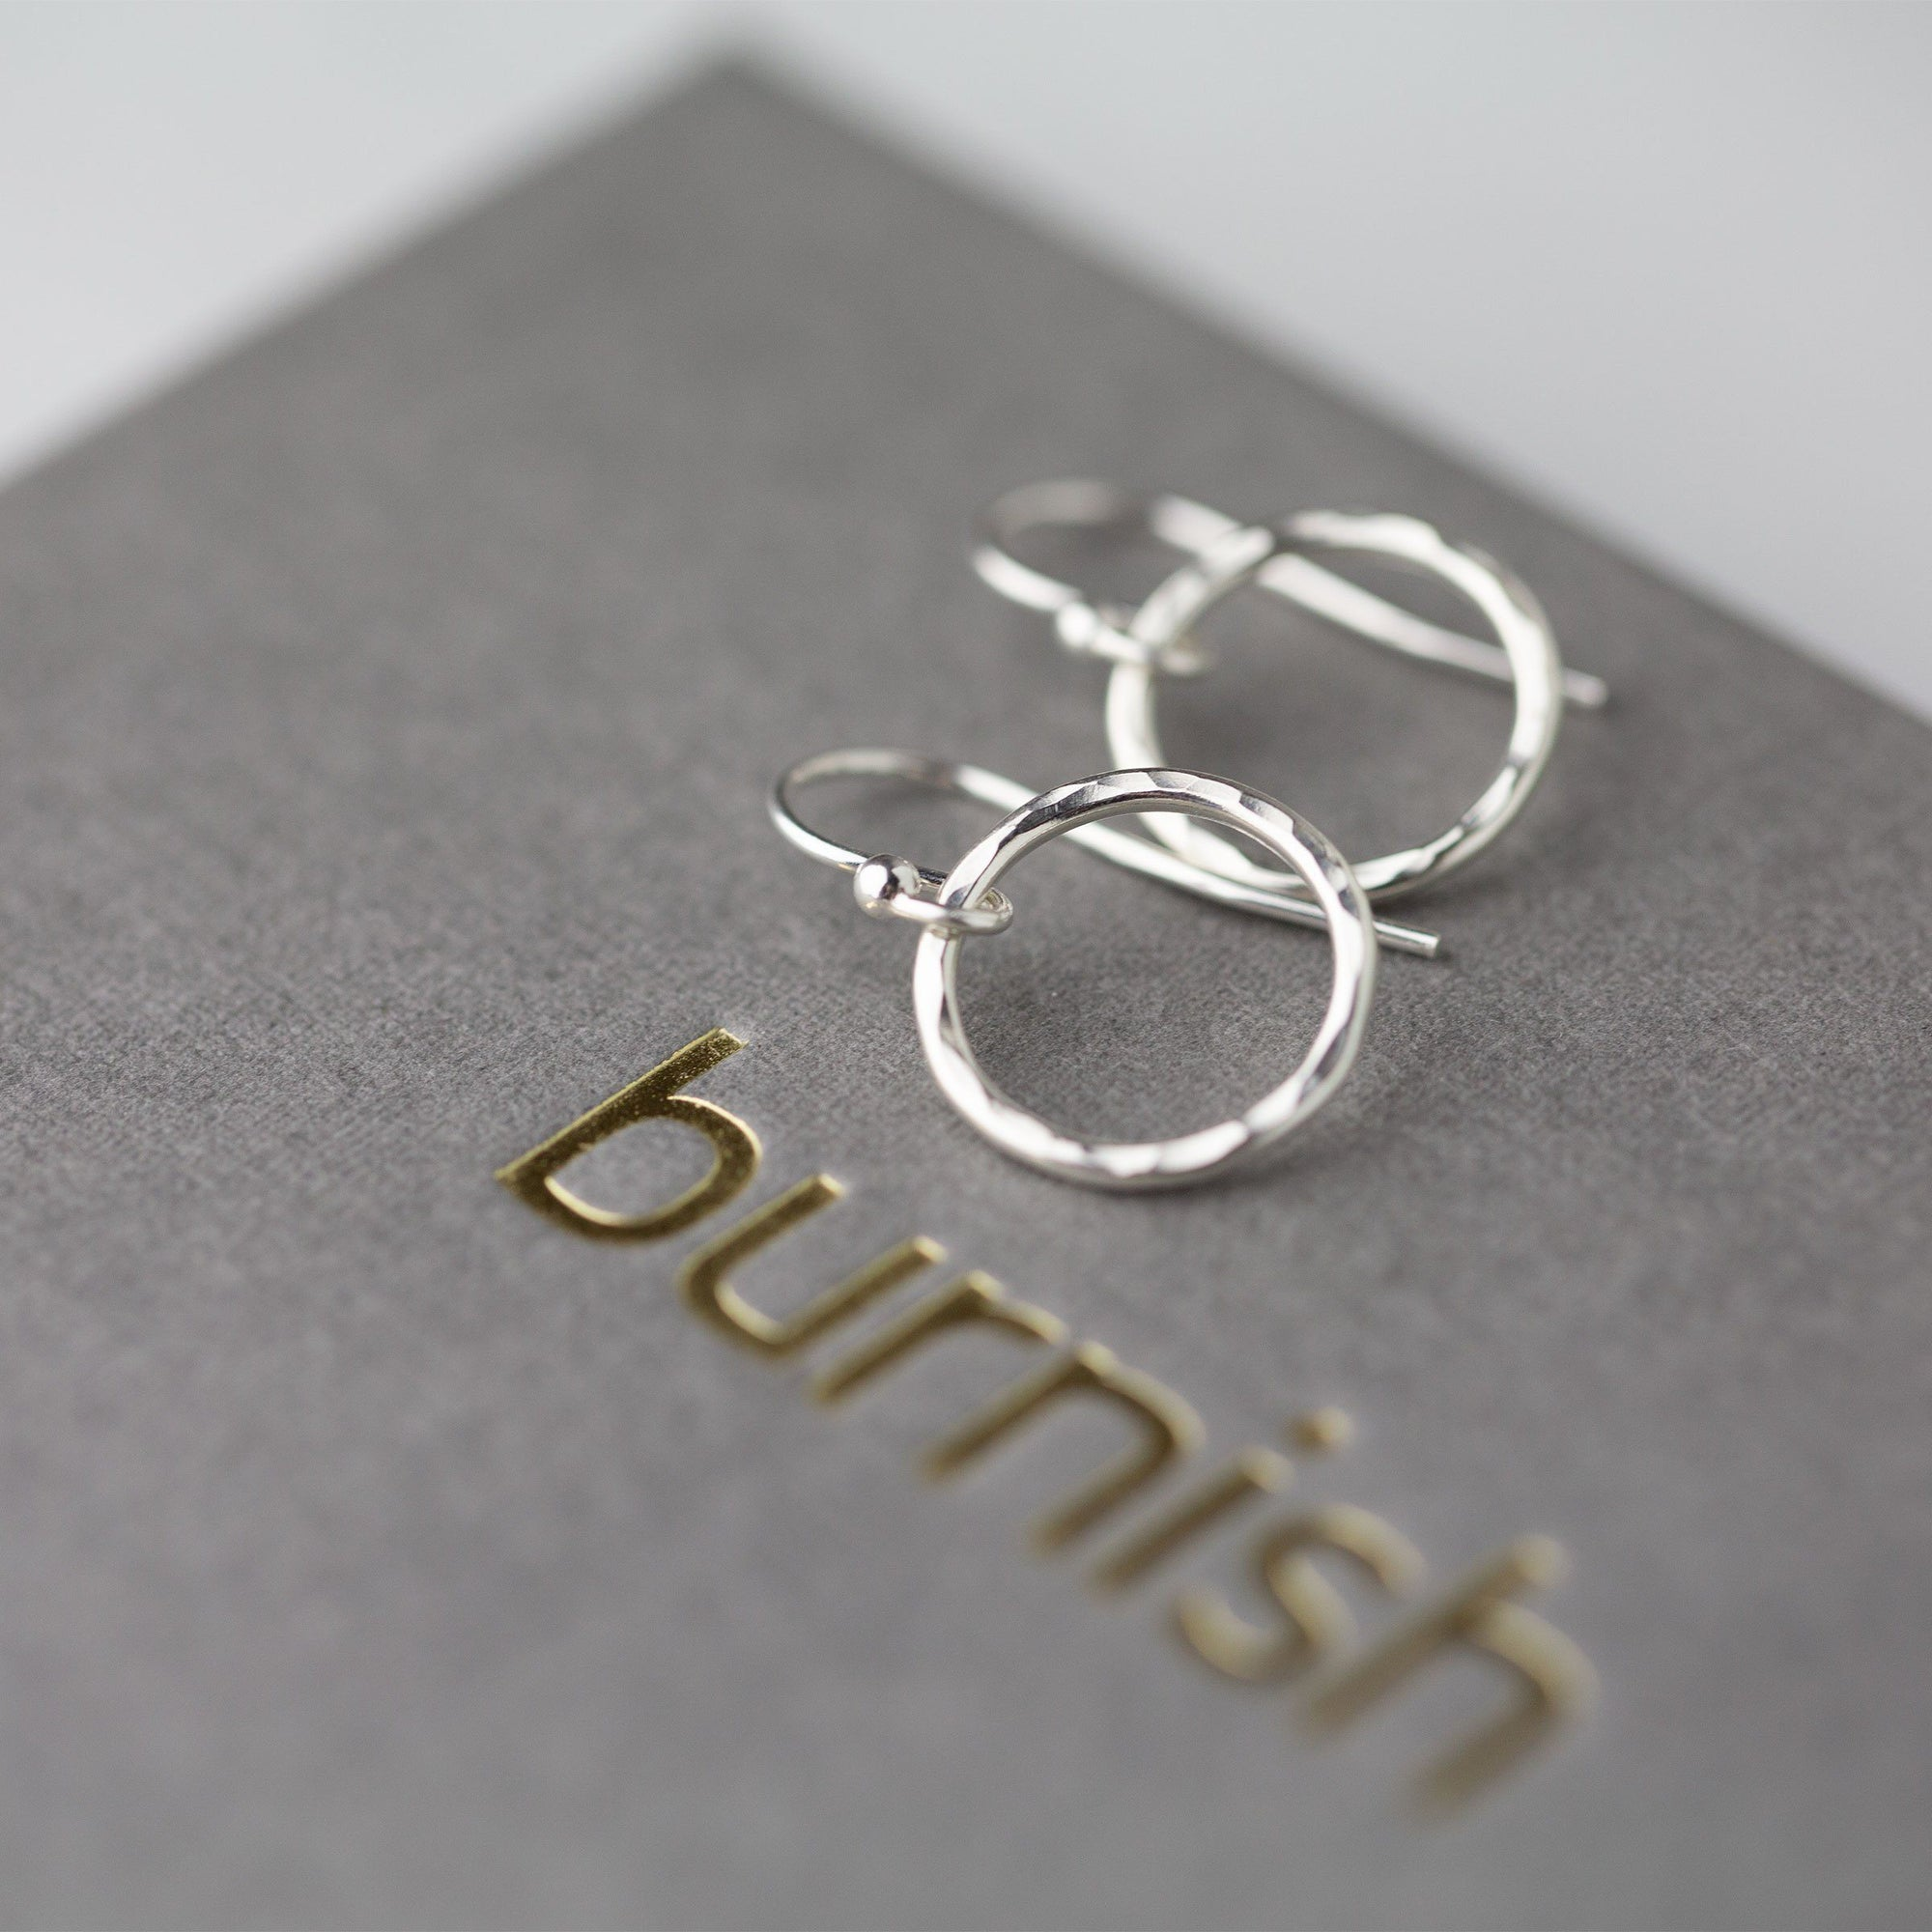 Medium Hammered Circle Earring - Handmade Jewelry by Burnish